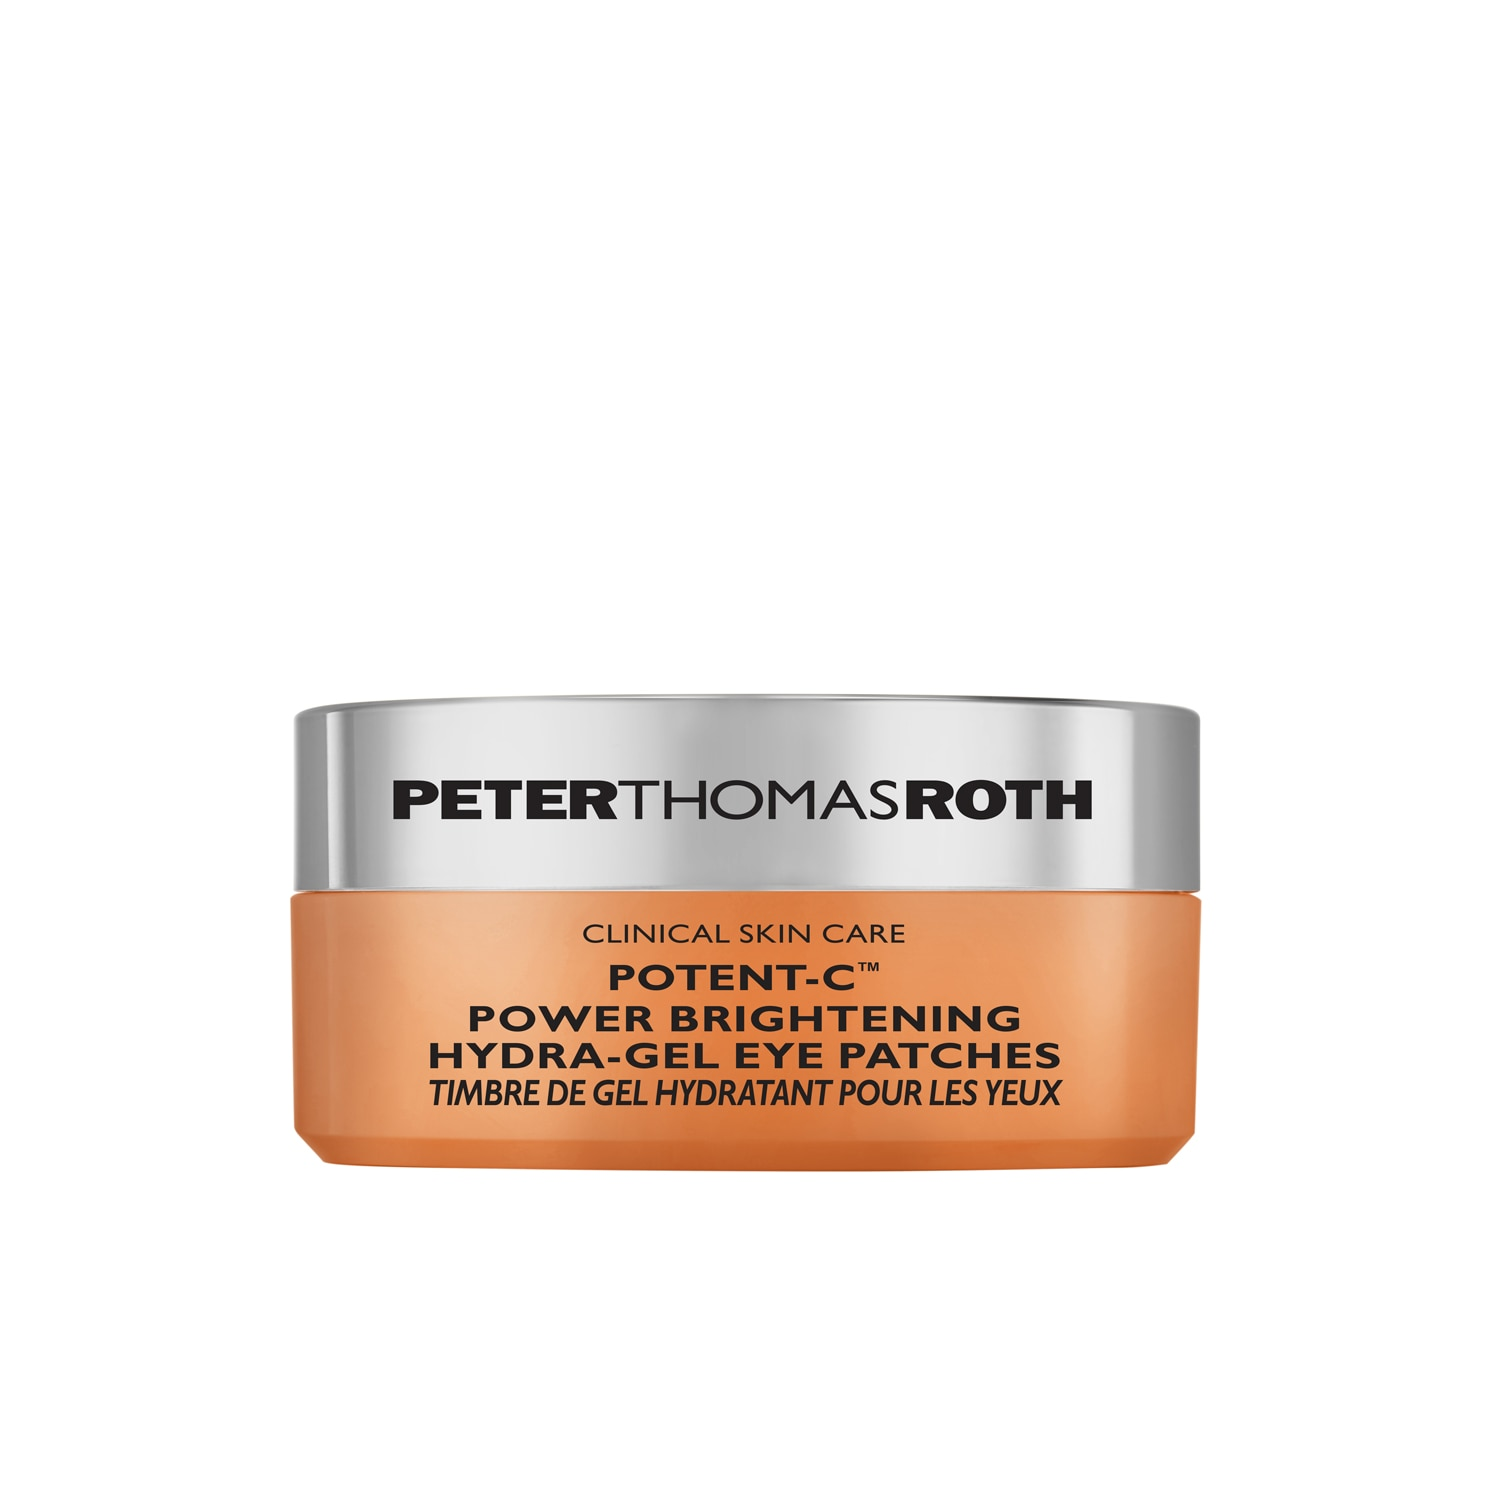 POTENT-C™ POWER BRIGHTENING HYDRA-GEL EYE PATCHES (PARCHES PARA OJOS)